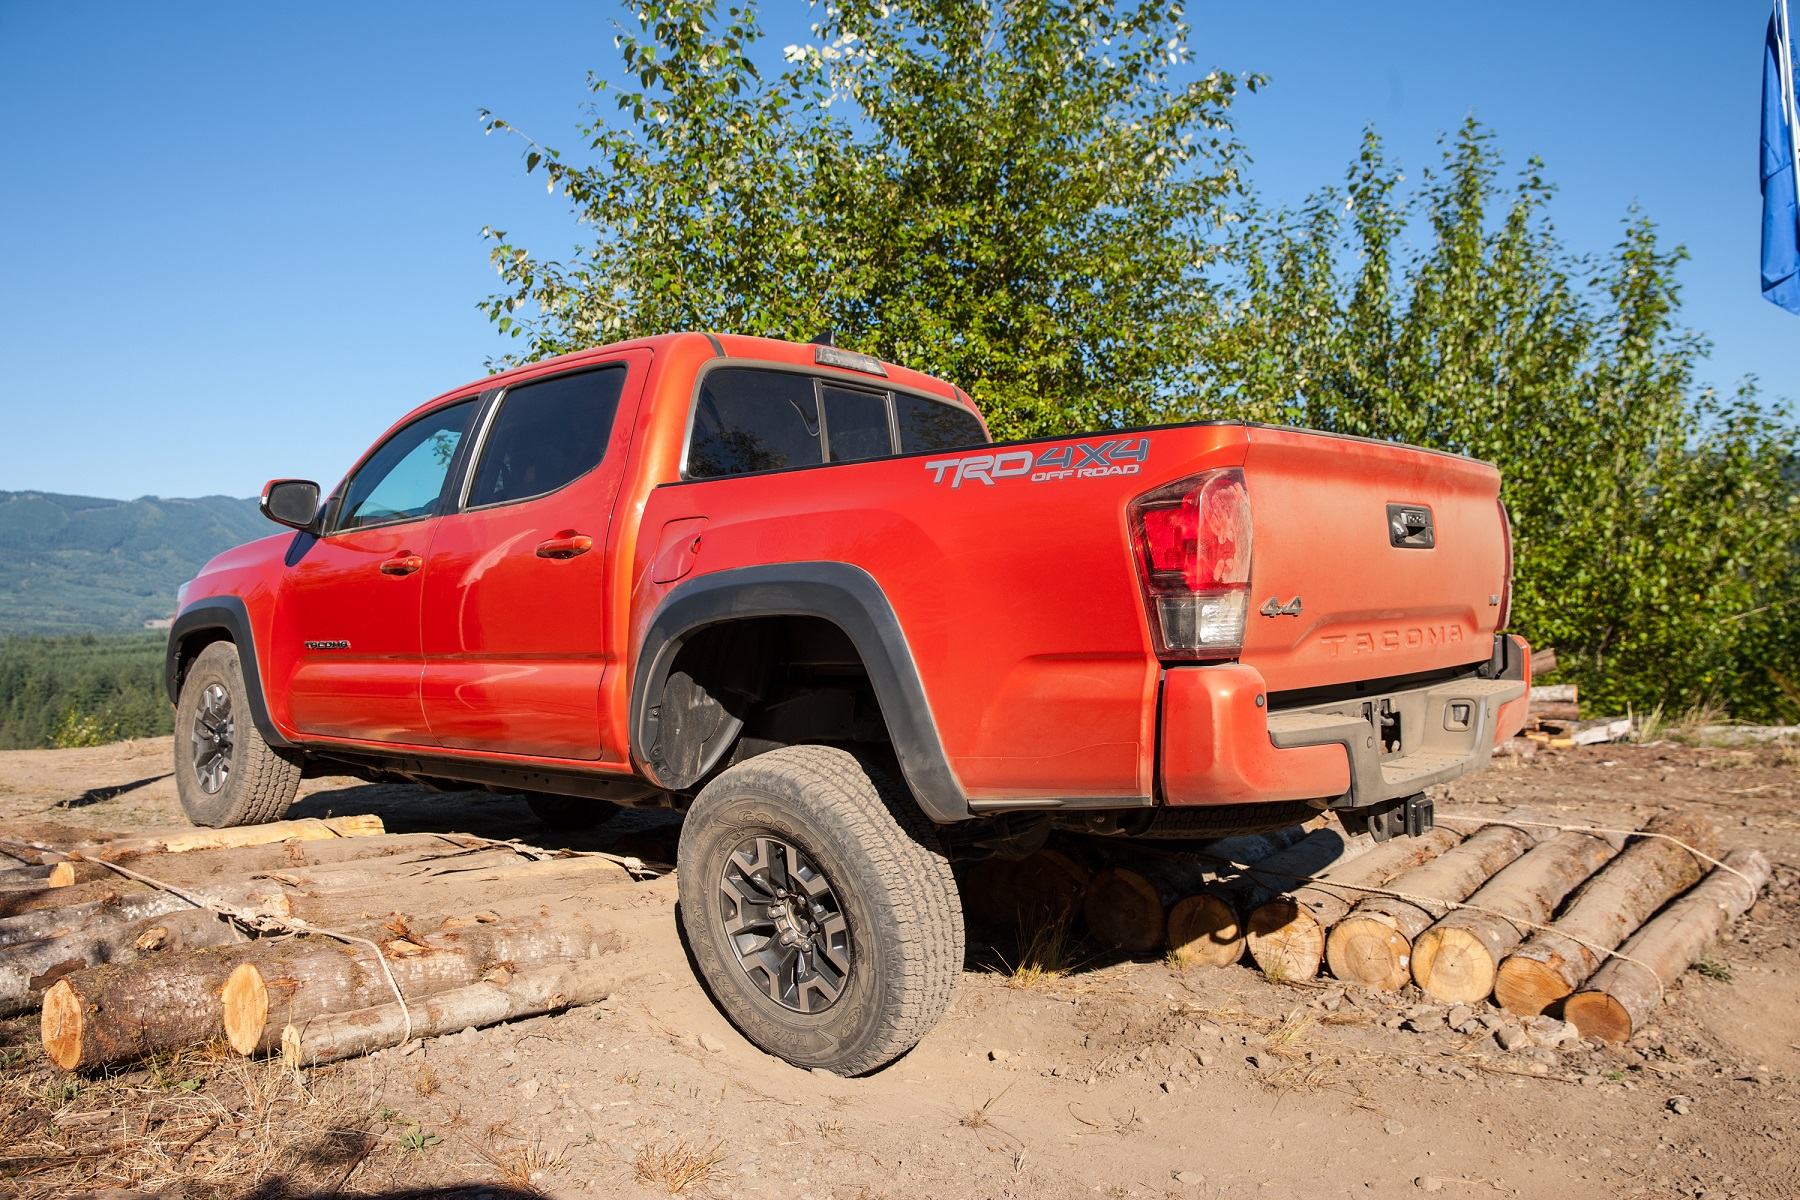 Manufacturer photo: The TRD Off-Road Double Cab Tacoma here is close to 18 feet long, with a cargo box that measures 6 feet 1-inch